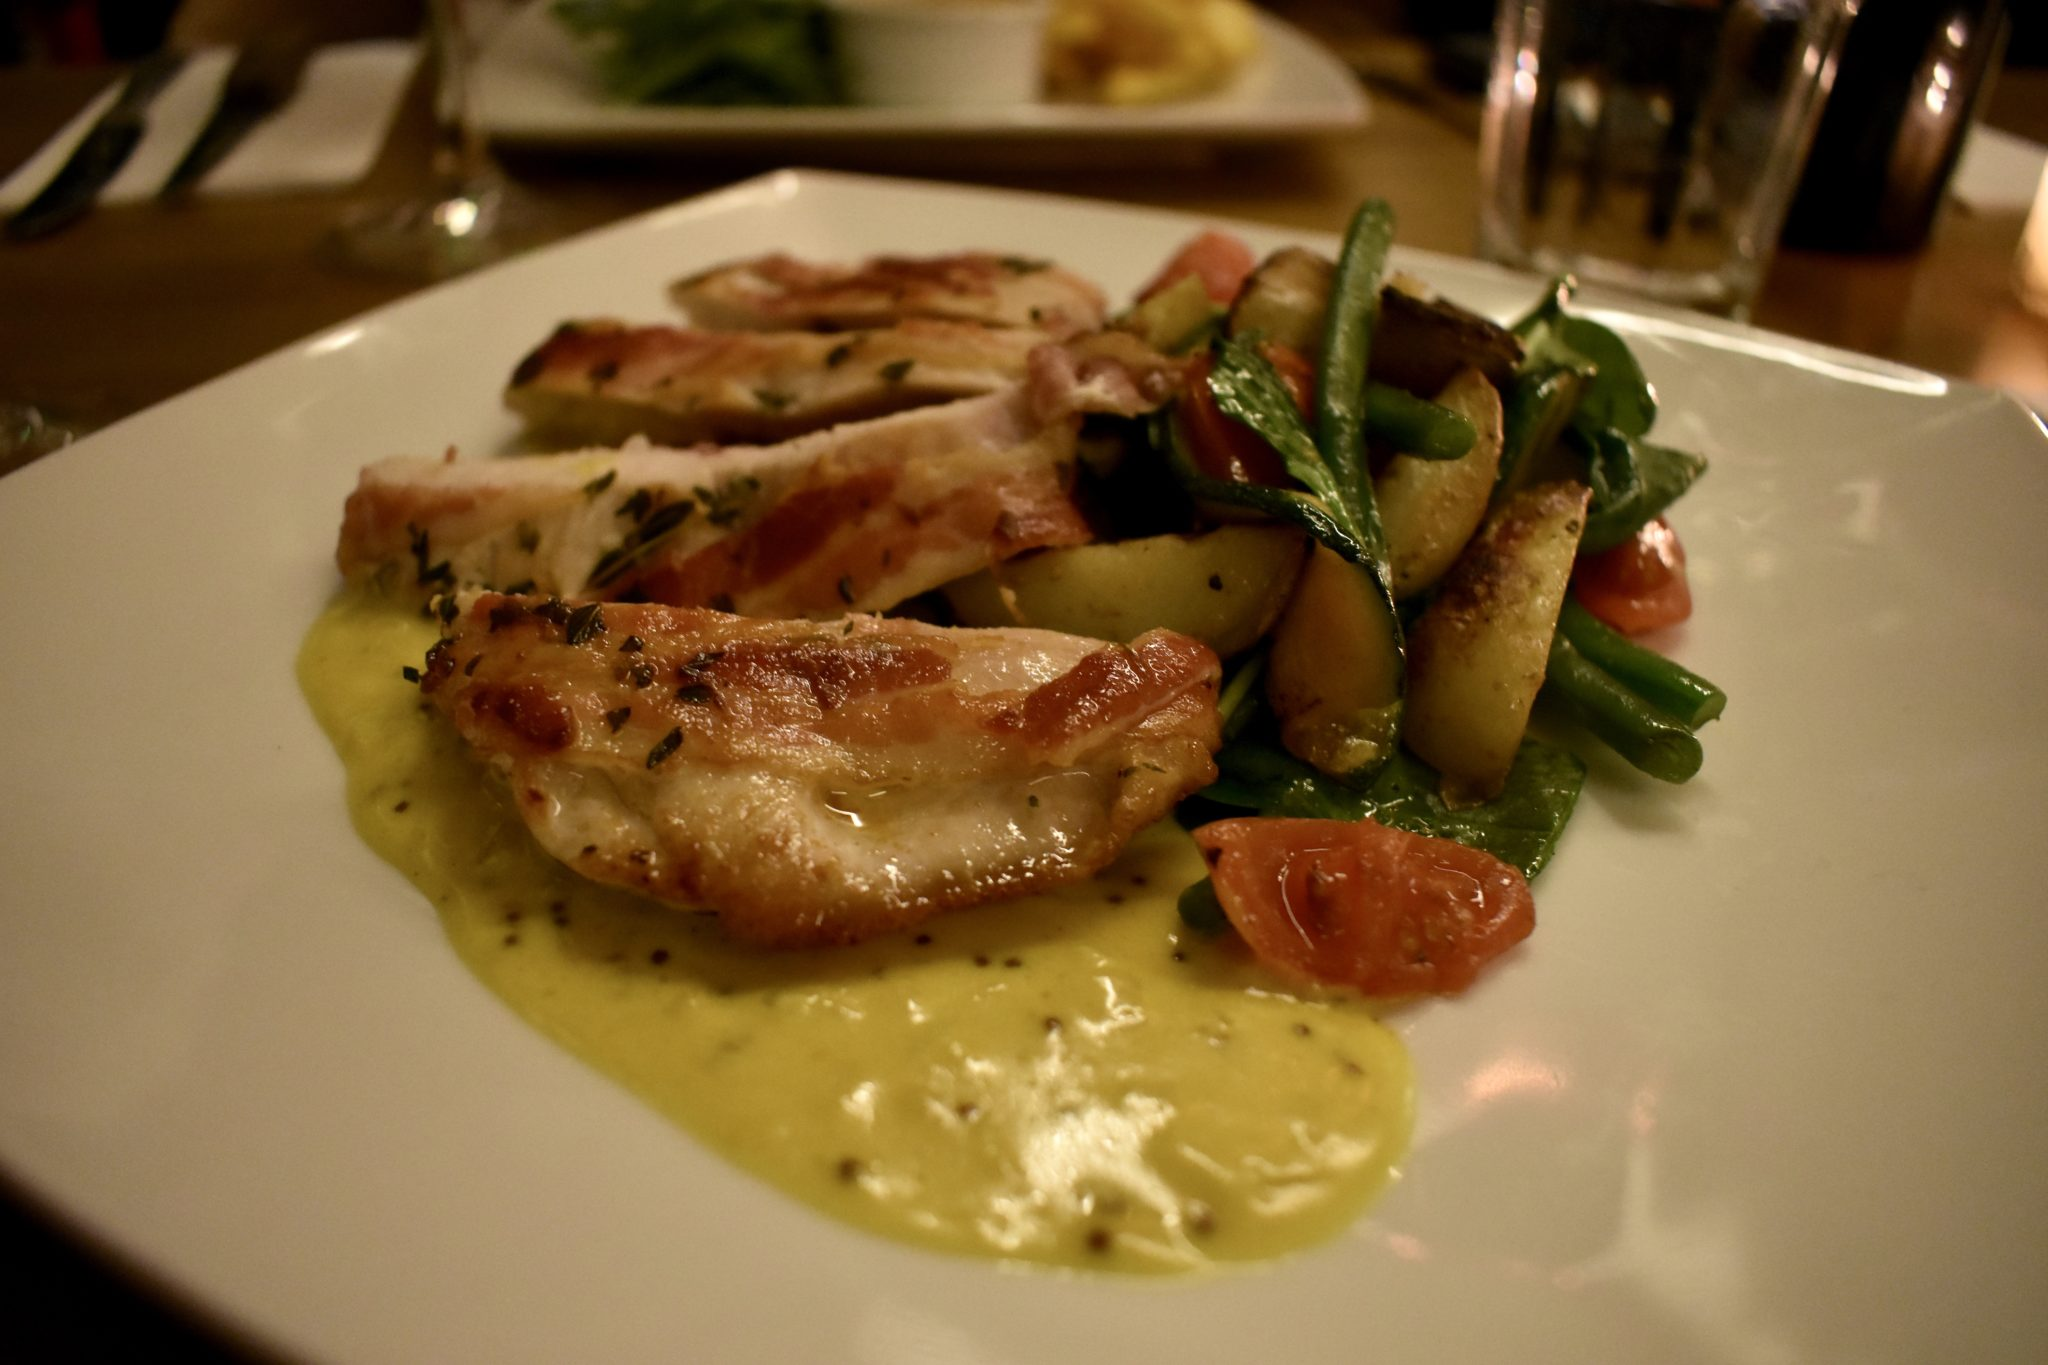 Chicken and Veg at The Fulham House, London